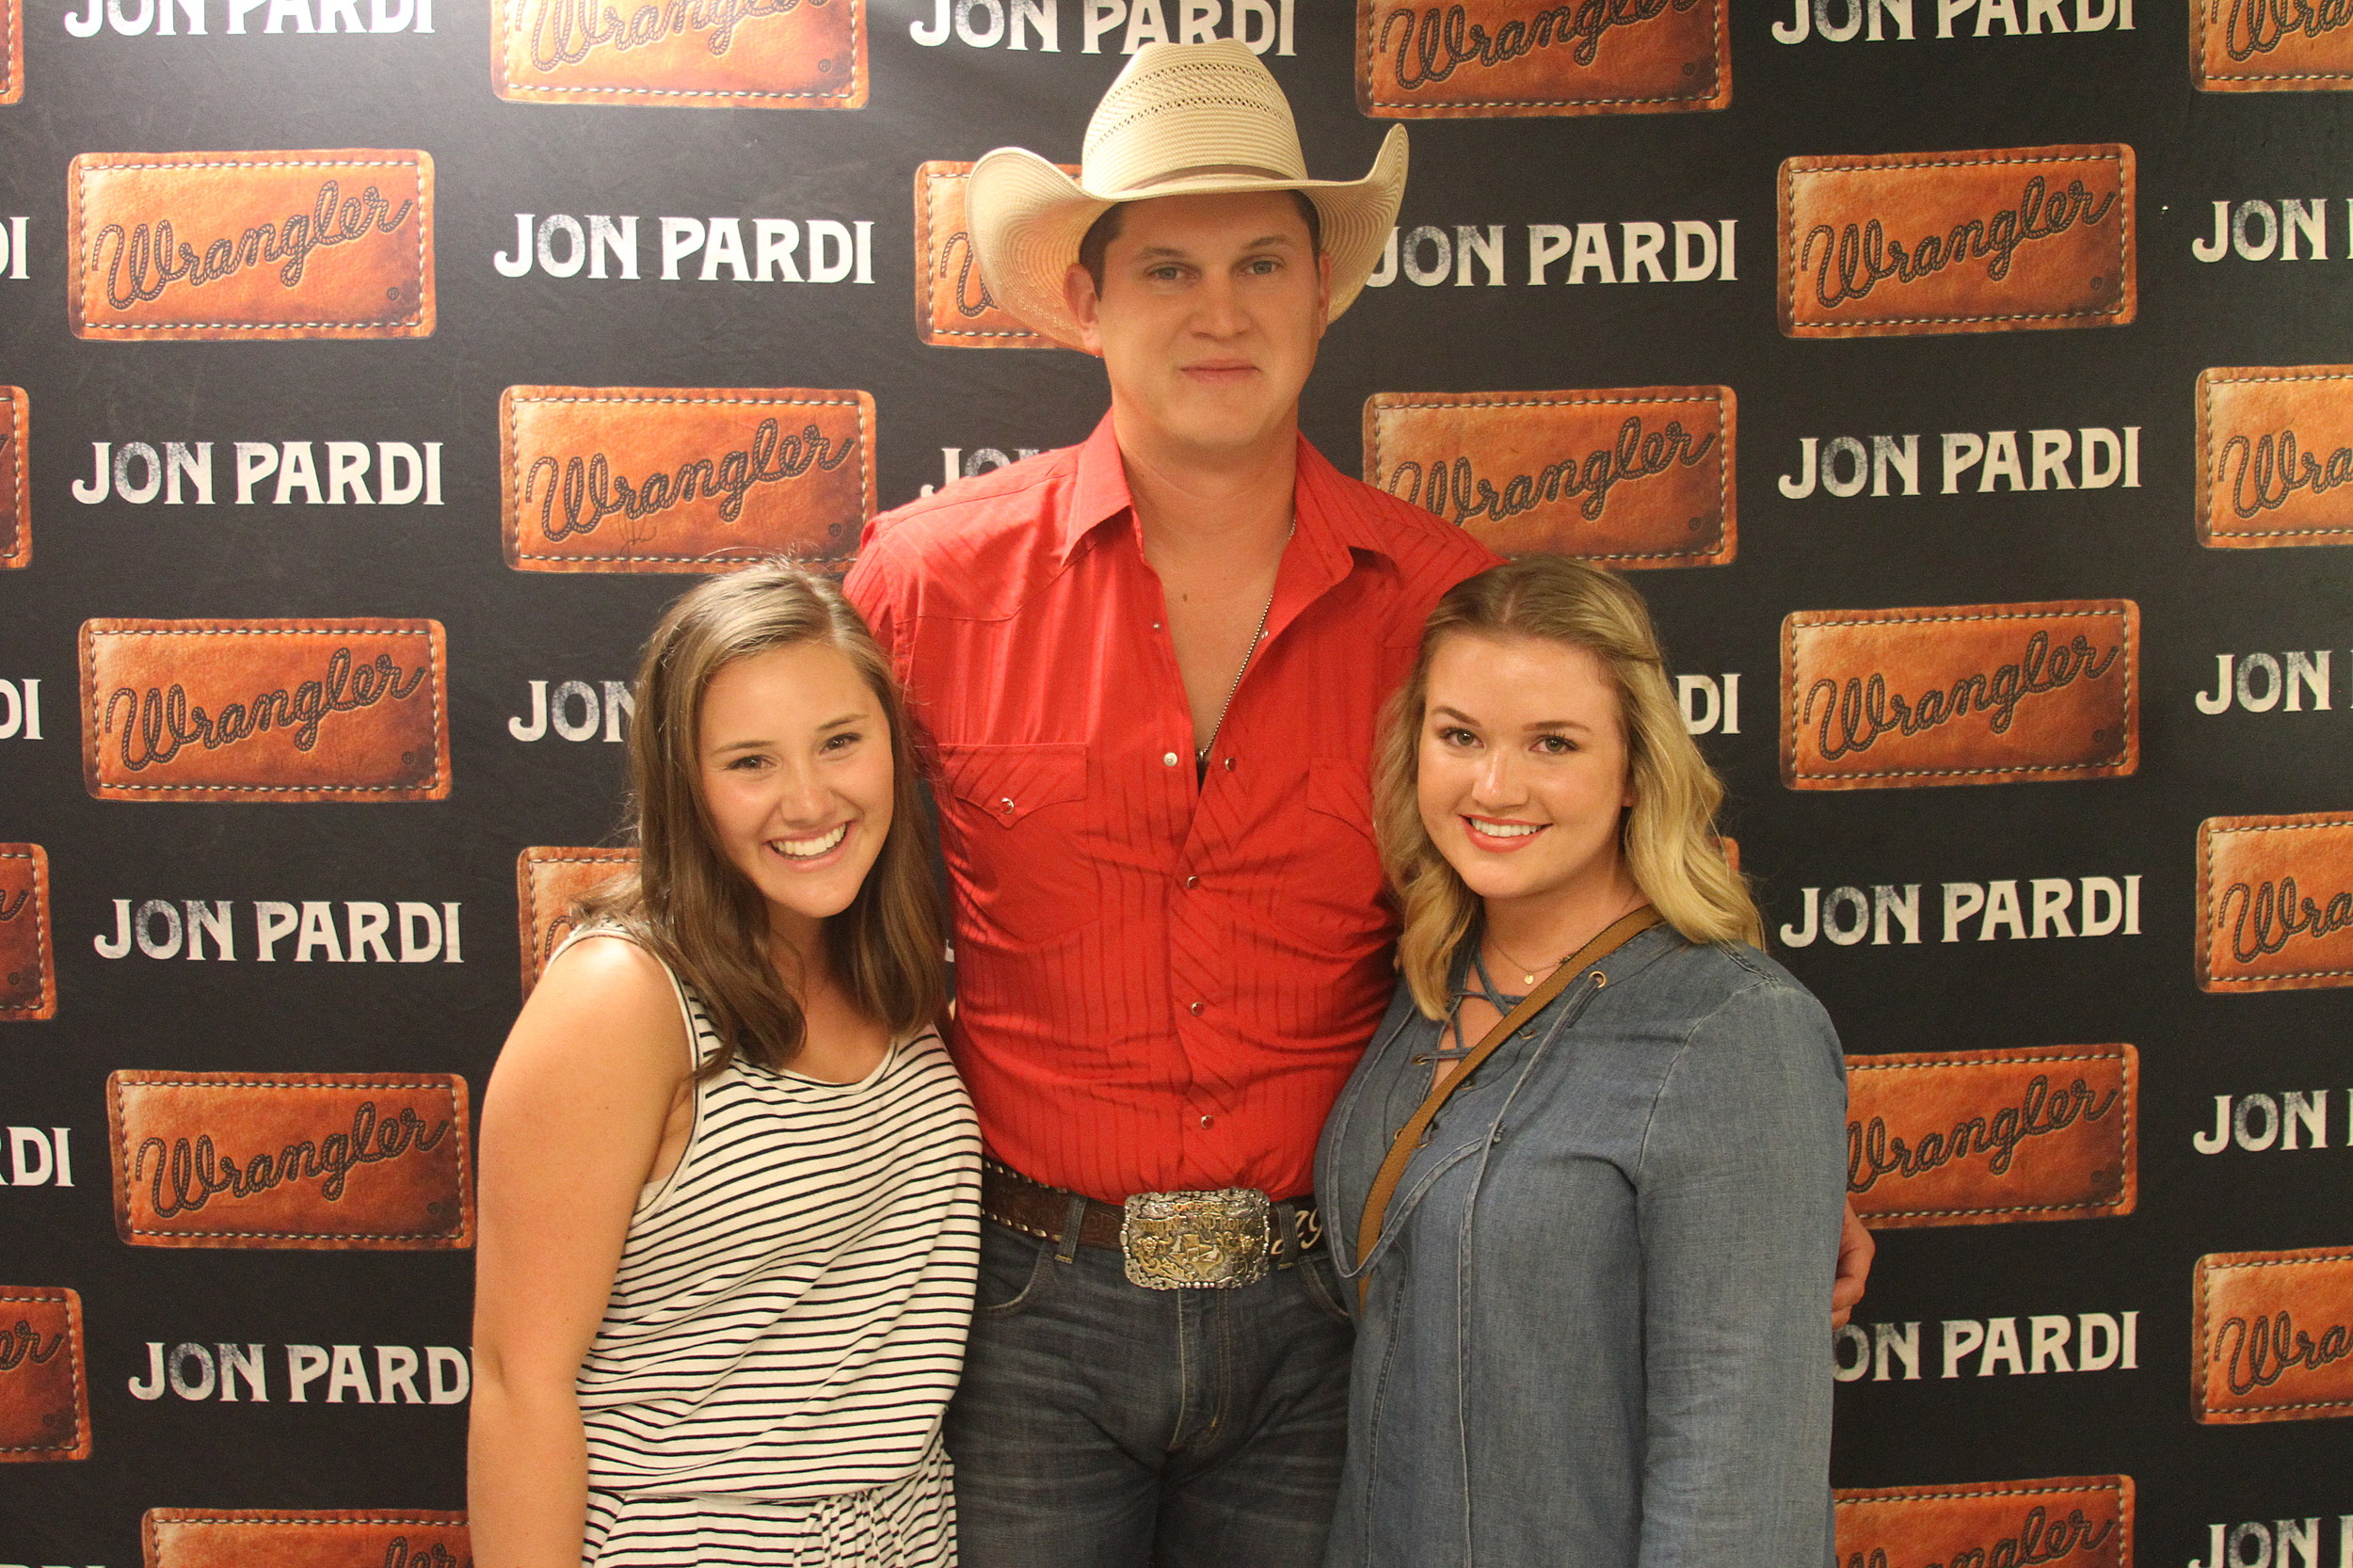 Jon Pardi Meet Greet Photos